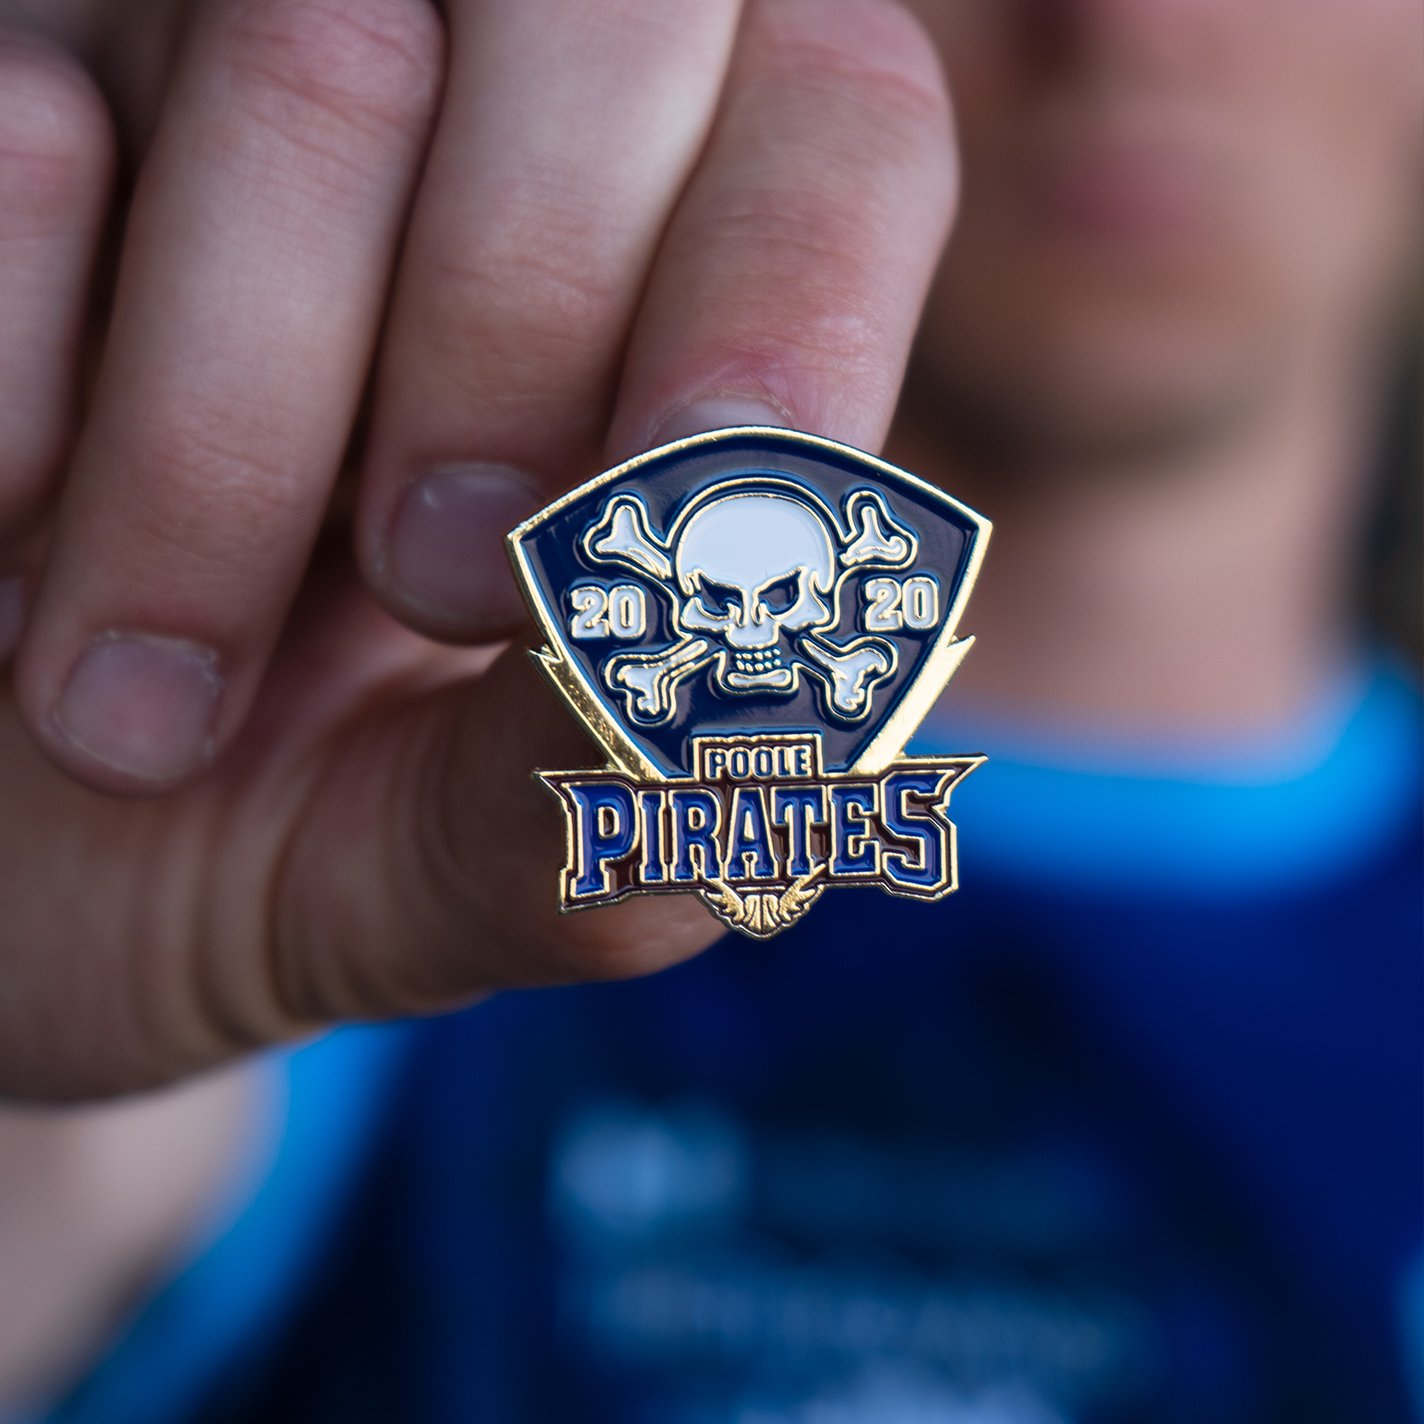 NEW Poole Pirates 2020 Pin (Gold)